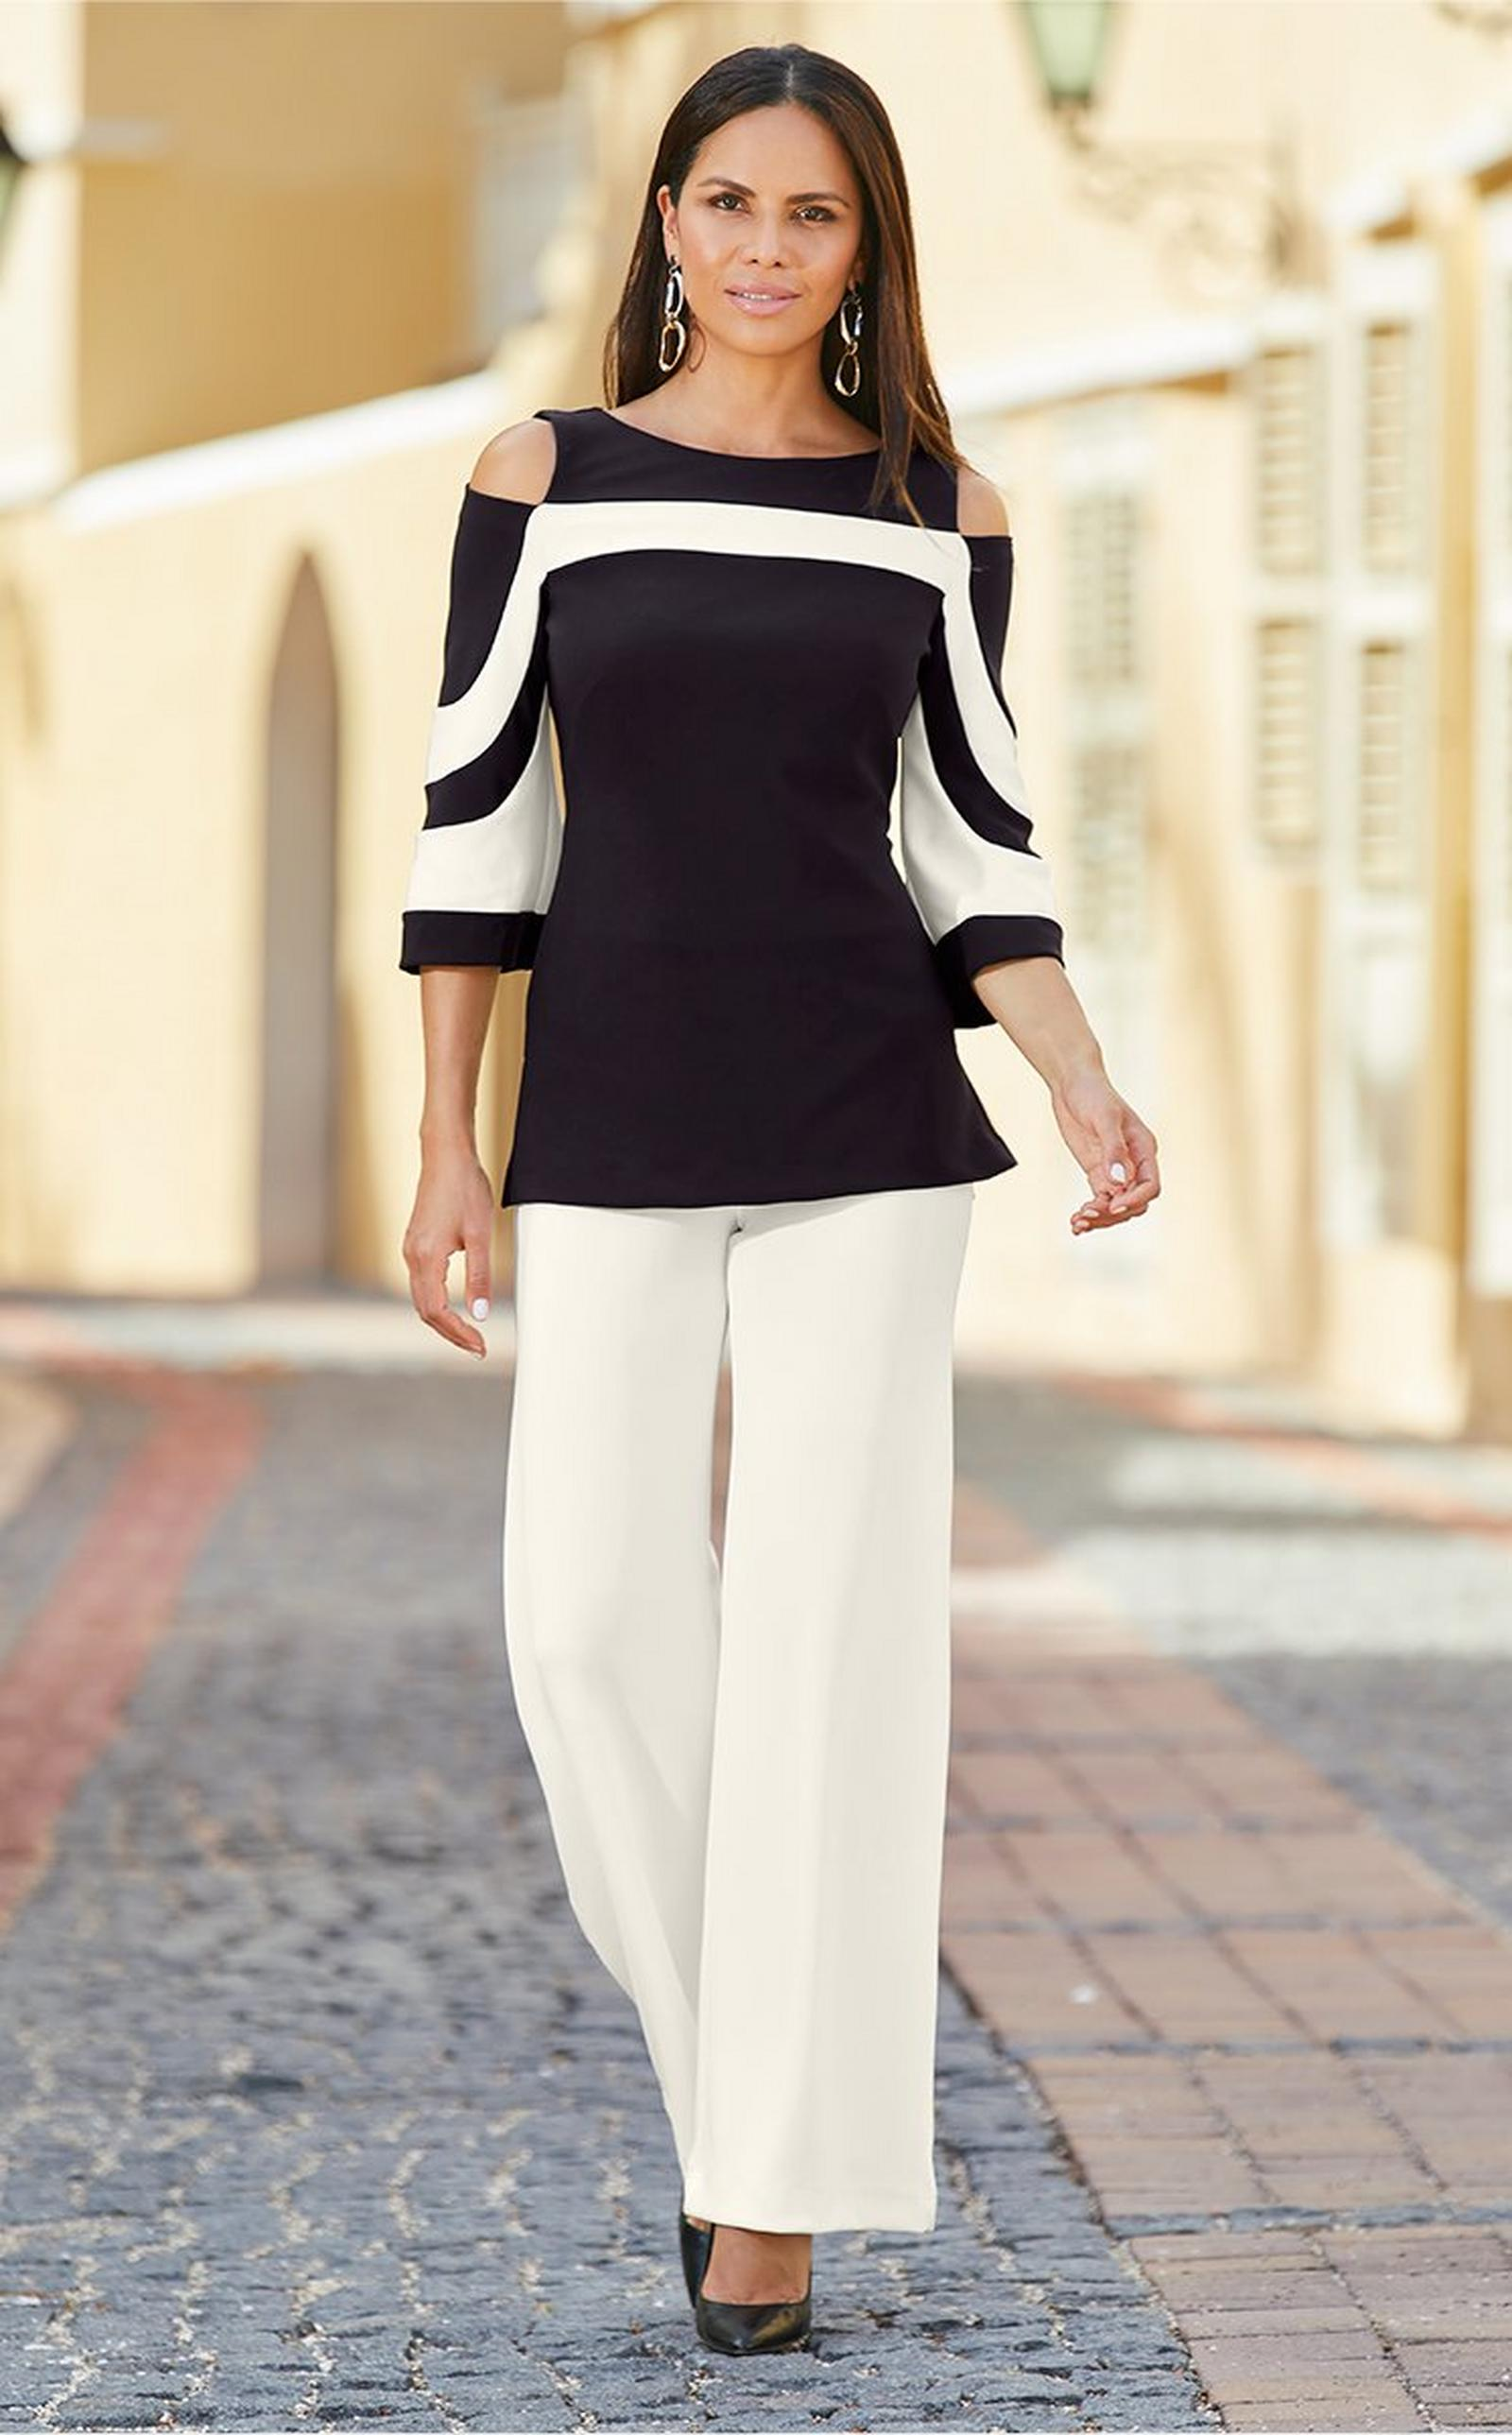 model wearing a black and white cold-shoulder top with off-white palazzo pants and black pumps.